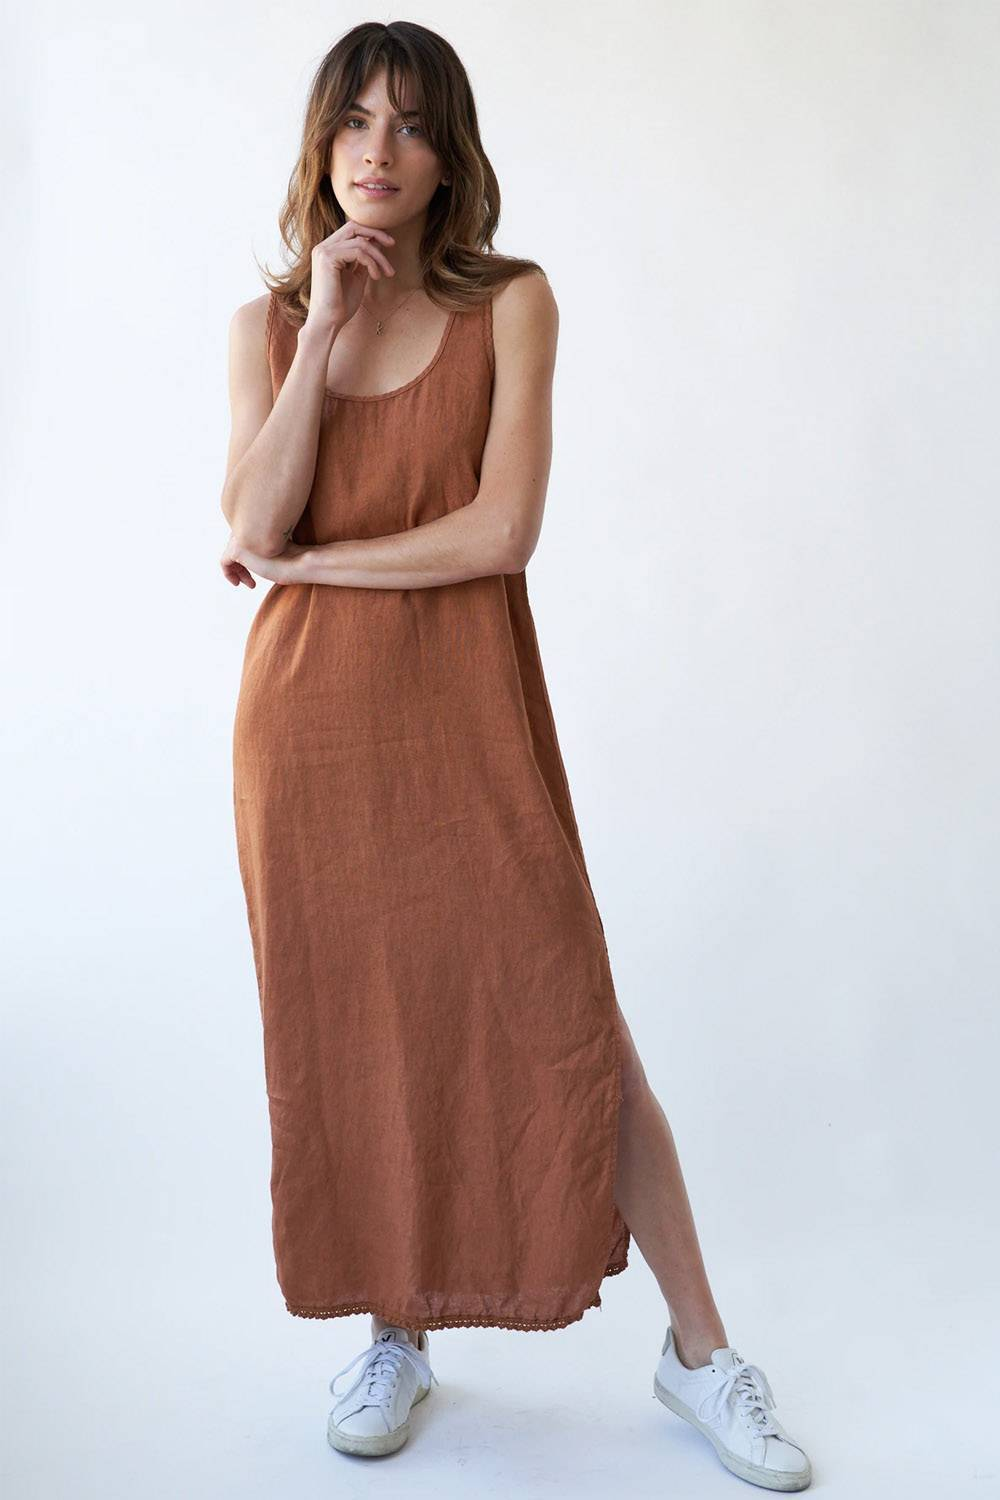 la relaxed affordable linen dress